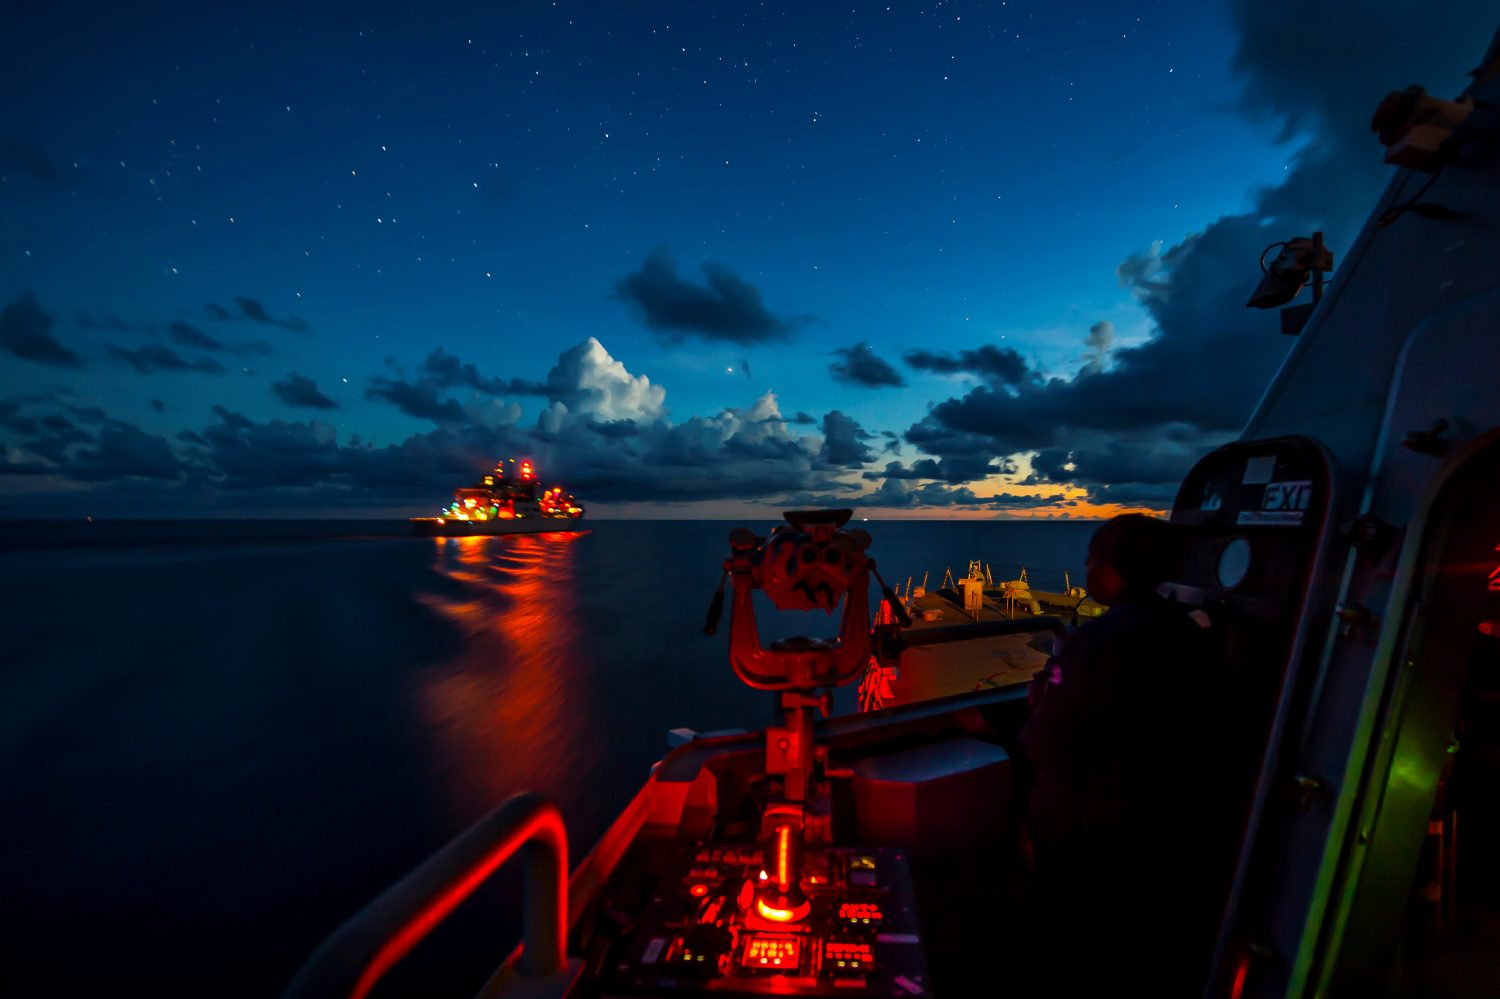 The littoral combat ship USS Fort Worth (LCS 3) prepares to transit alongside the Military Sealift Command dry cargo and ammunition ship USNS Wally Schirra (T-AKE 8) during a replenishment-at-sea during routine patrols in international waters of the South China Sea near the Spratly Islands May 9, 2015. U.S. Navy photo by Mass Communication Specialist 2nd Class Conor Minto/Handout via REUTERS